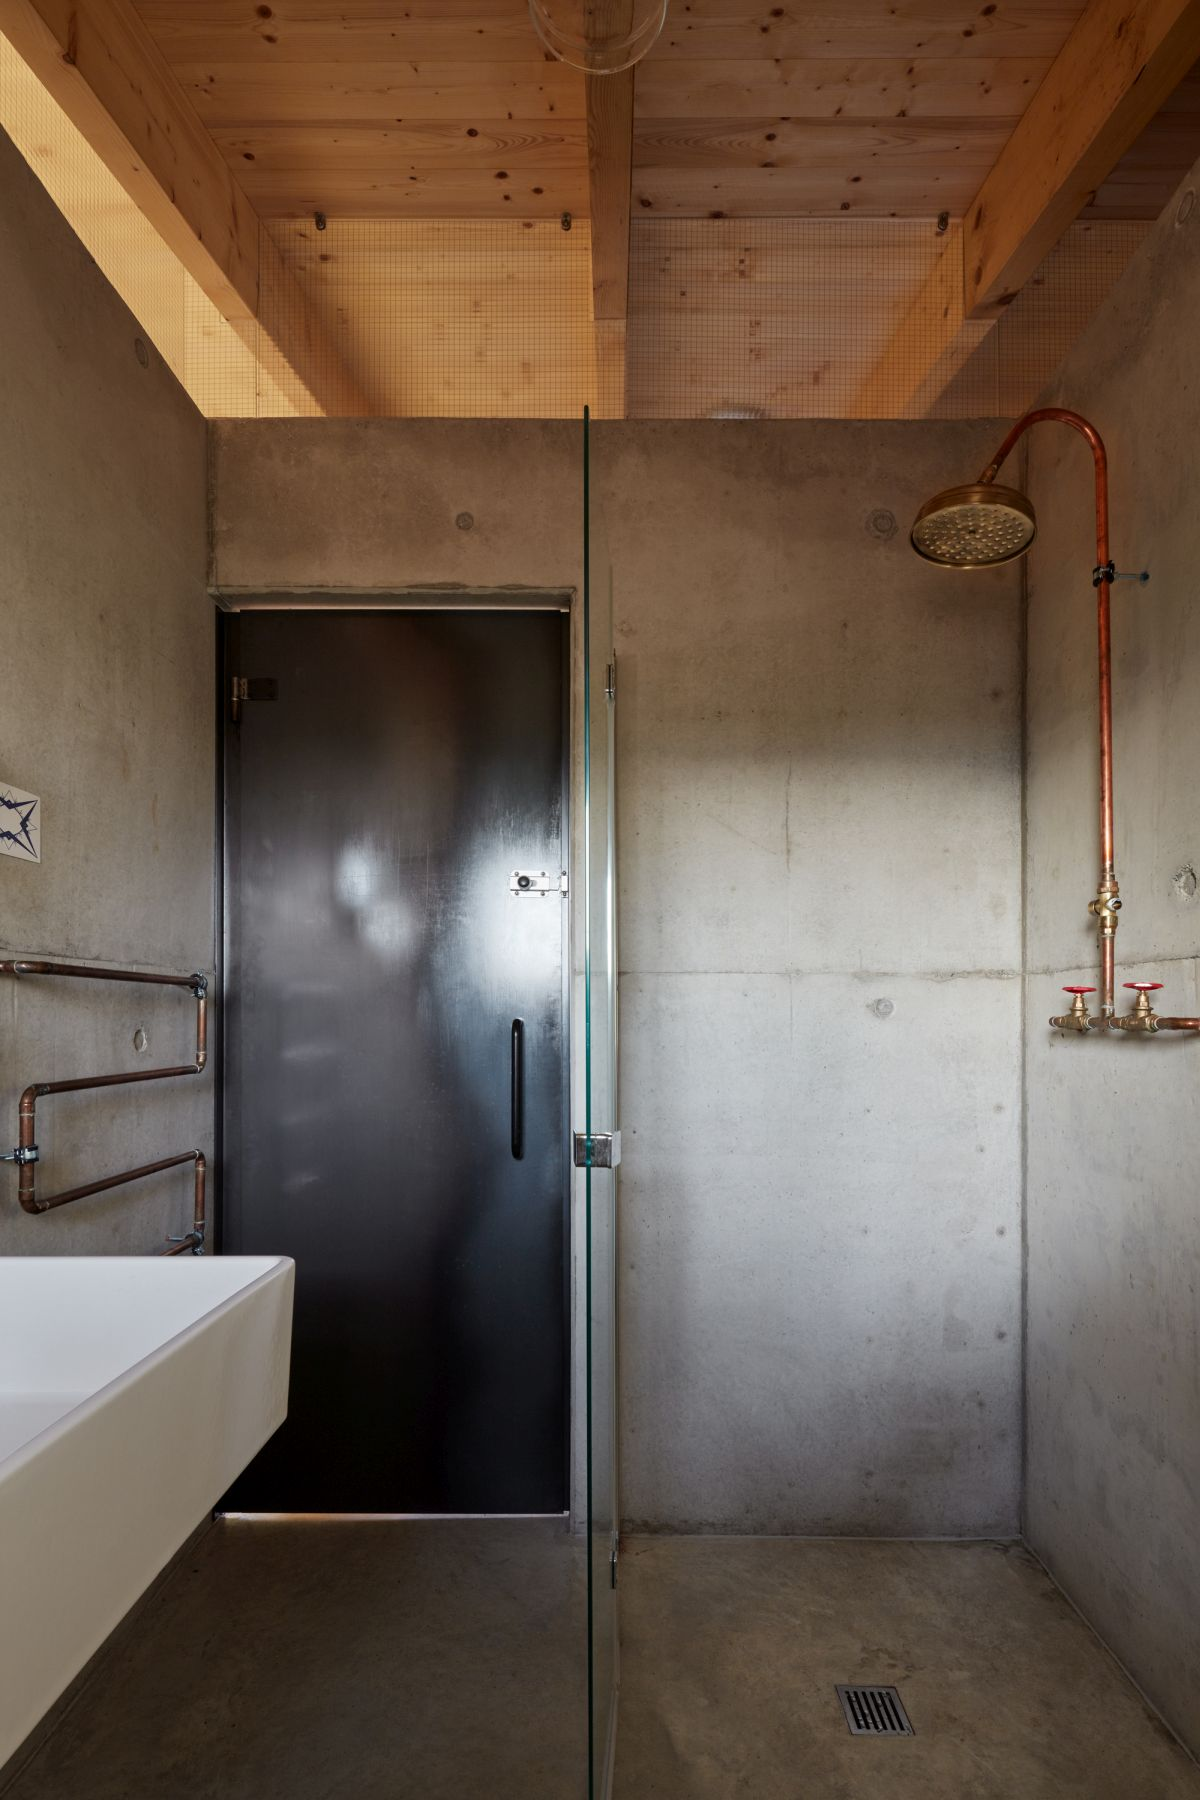 1559131838 589 a beautiful house hidden behind a large concrete wall - A Beautiful House Hidden Behind A Large Concrete Wall